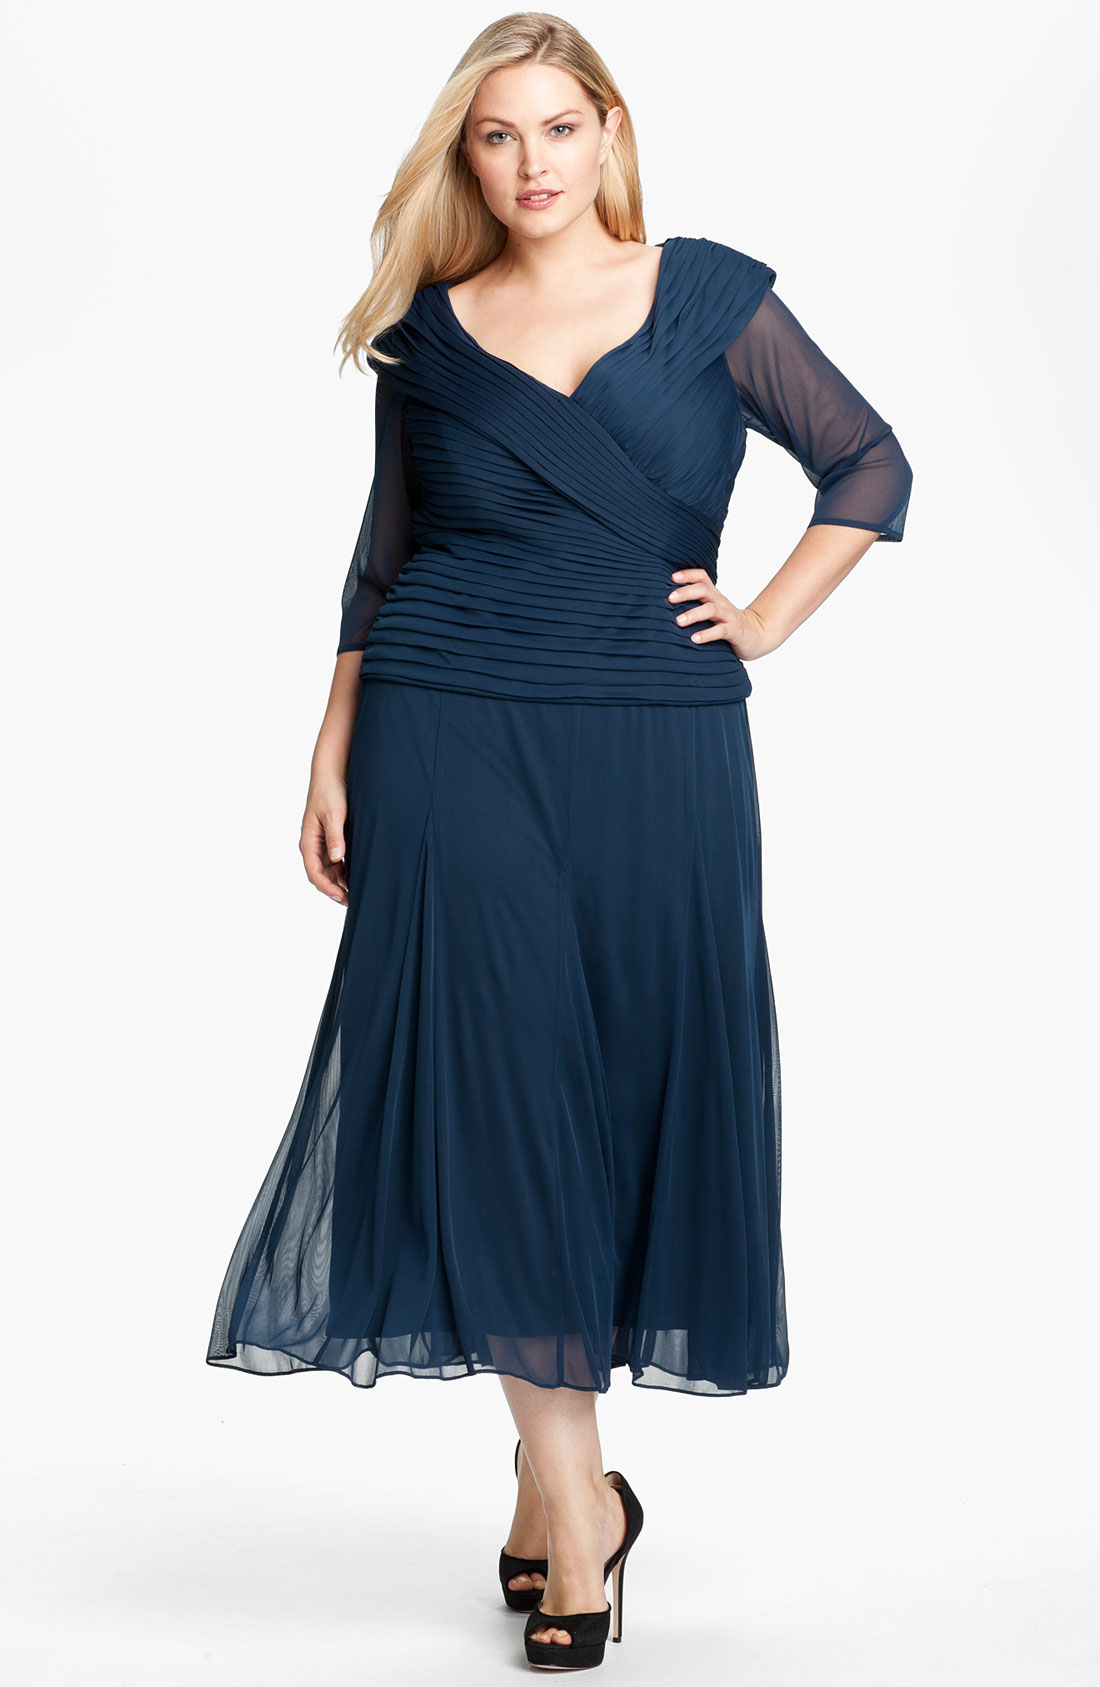 plus size dresses near me